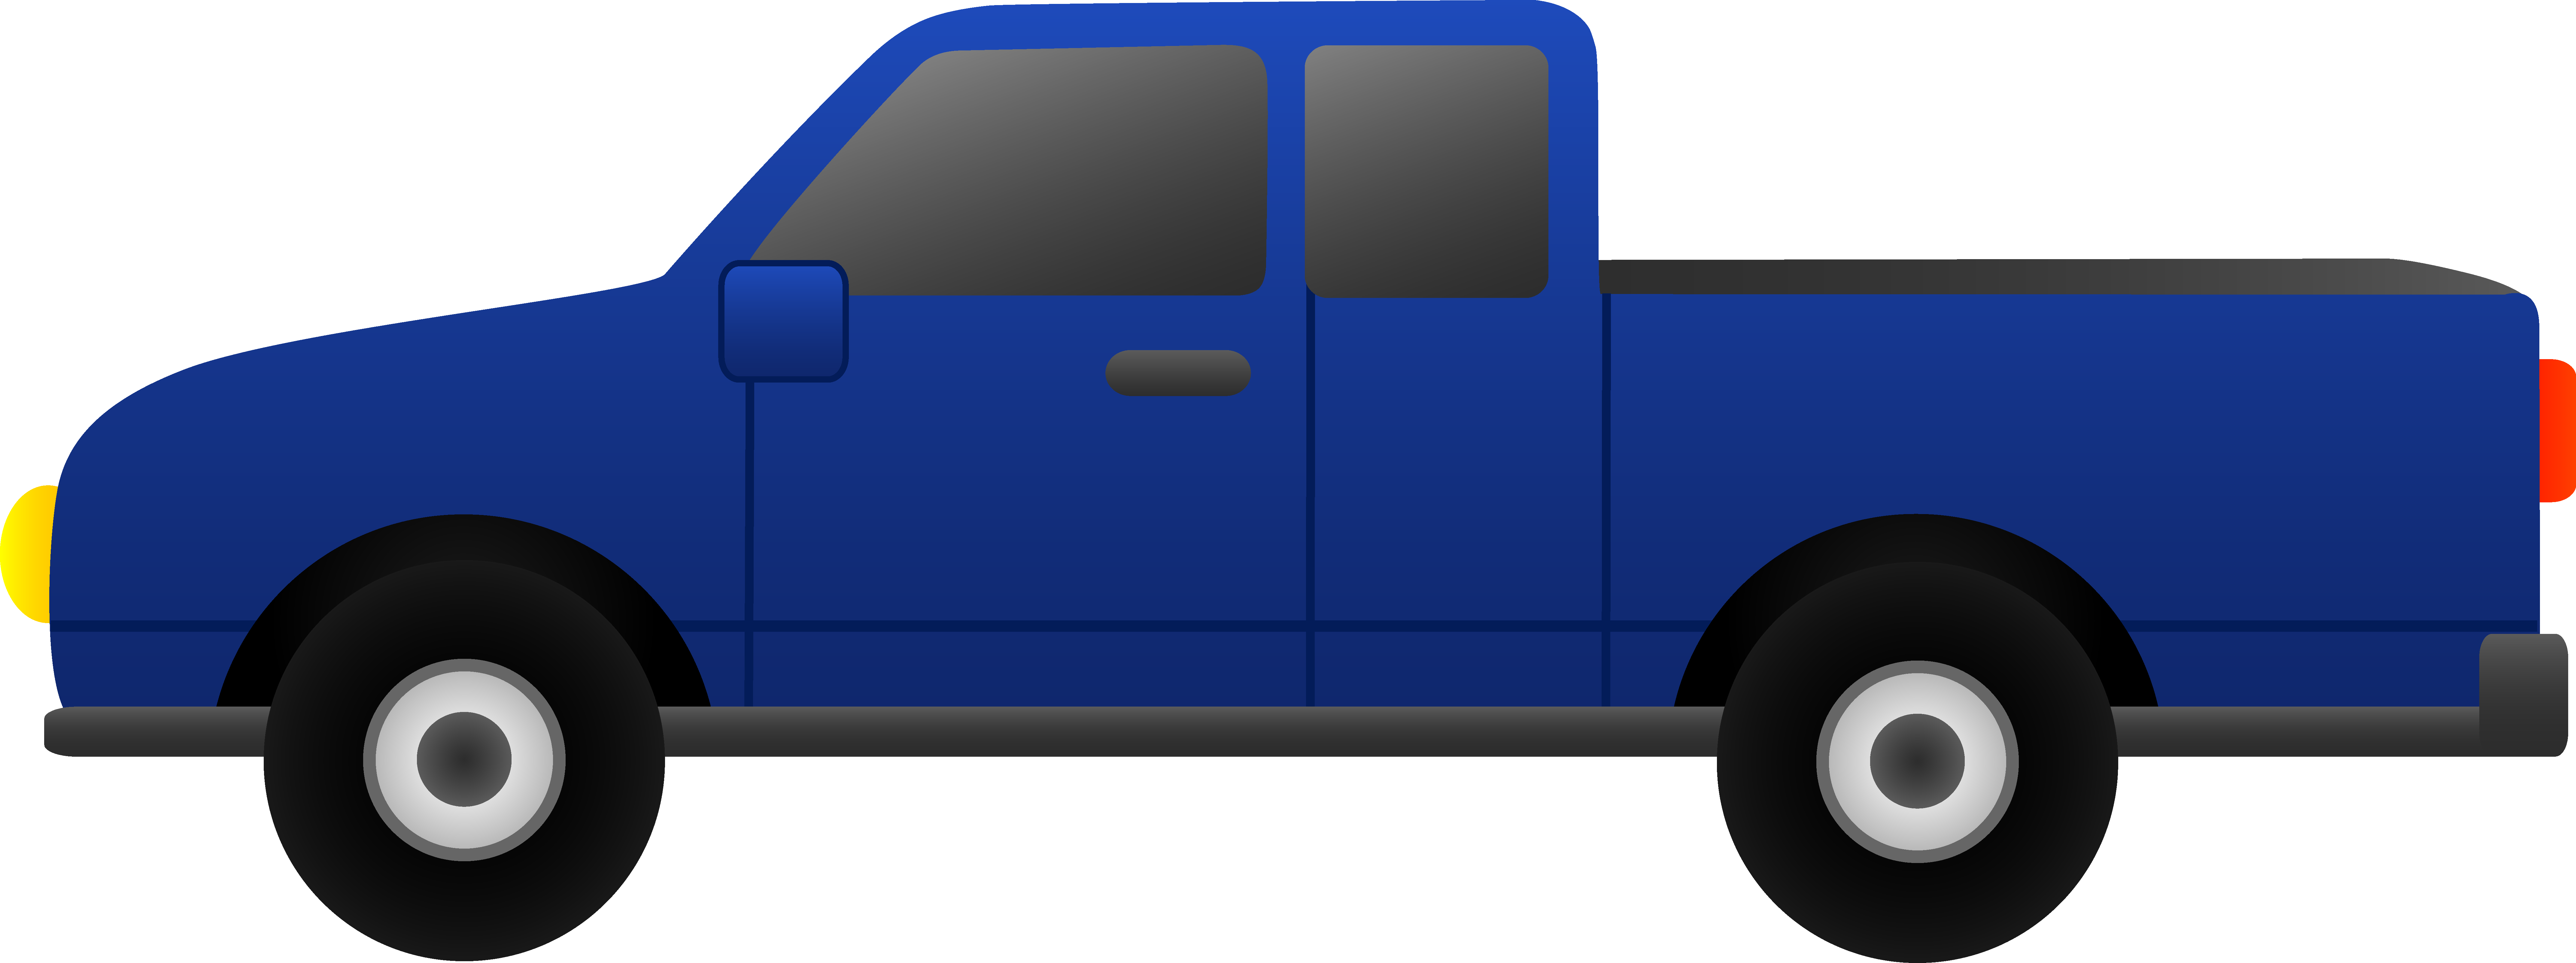 8576x3207 Free Animated Truck Clipart